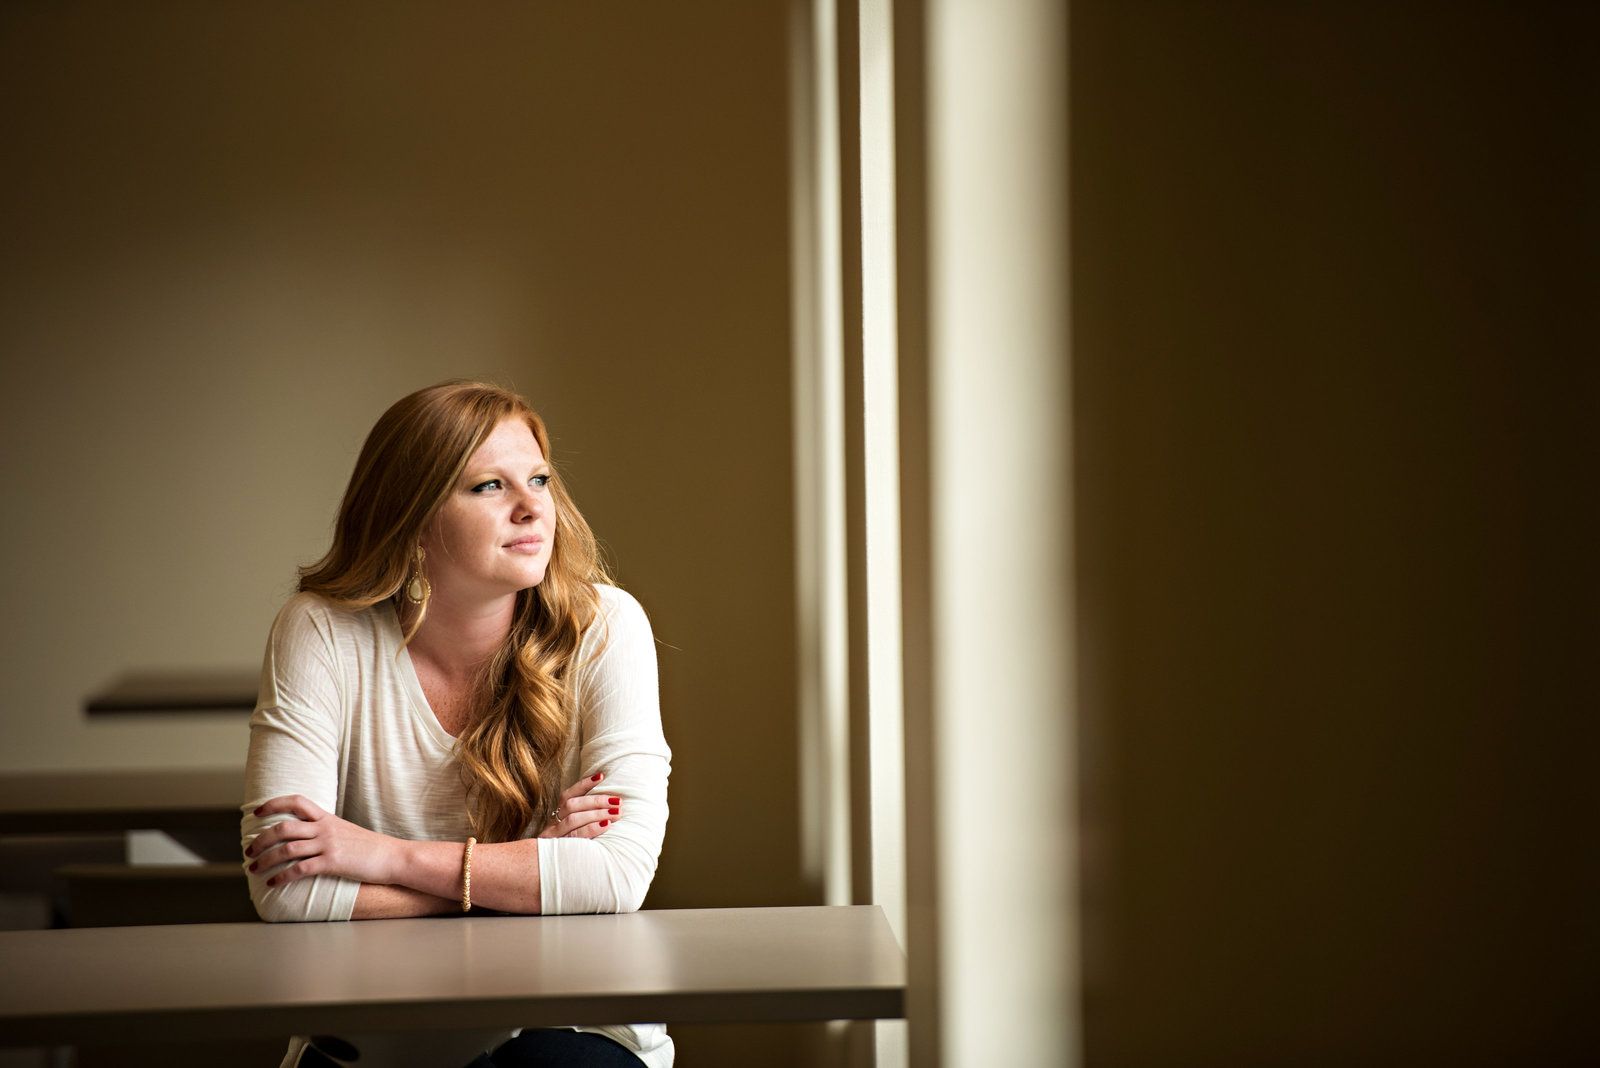 A red head sits at a desk in front of a window.